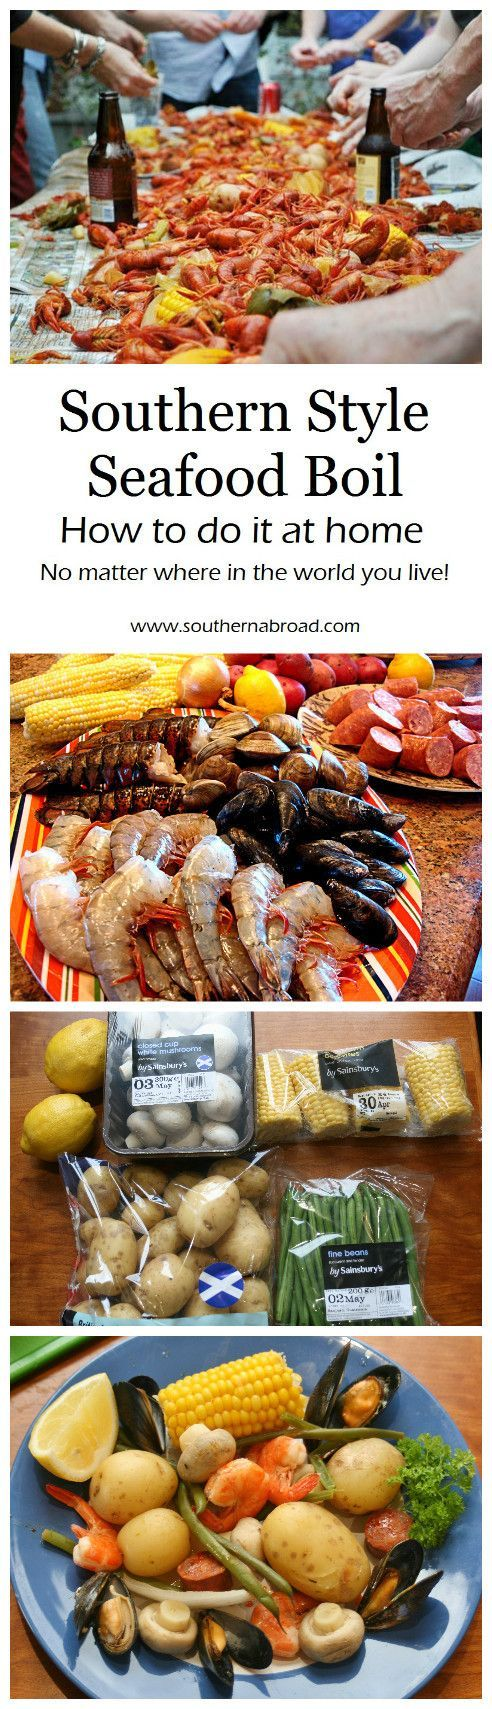 Southern Style Seafood Boil, crawfish boil, crab boil, crawfish recipe, seafood recipe, shrimp, mussels, party food #seafoodrecipes